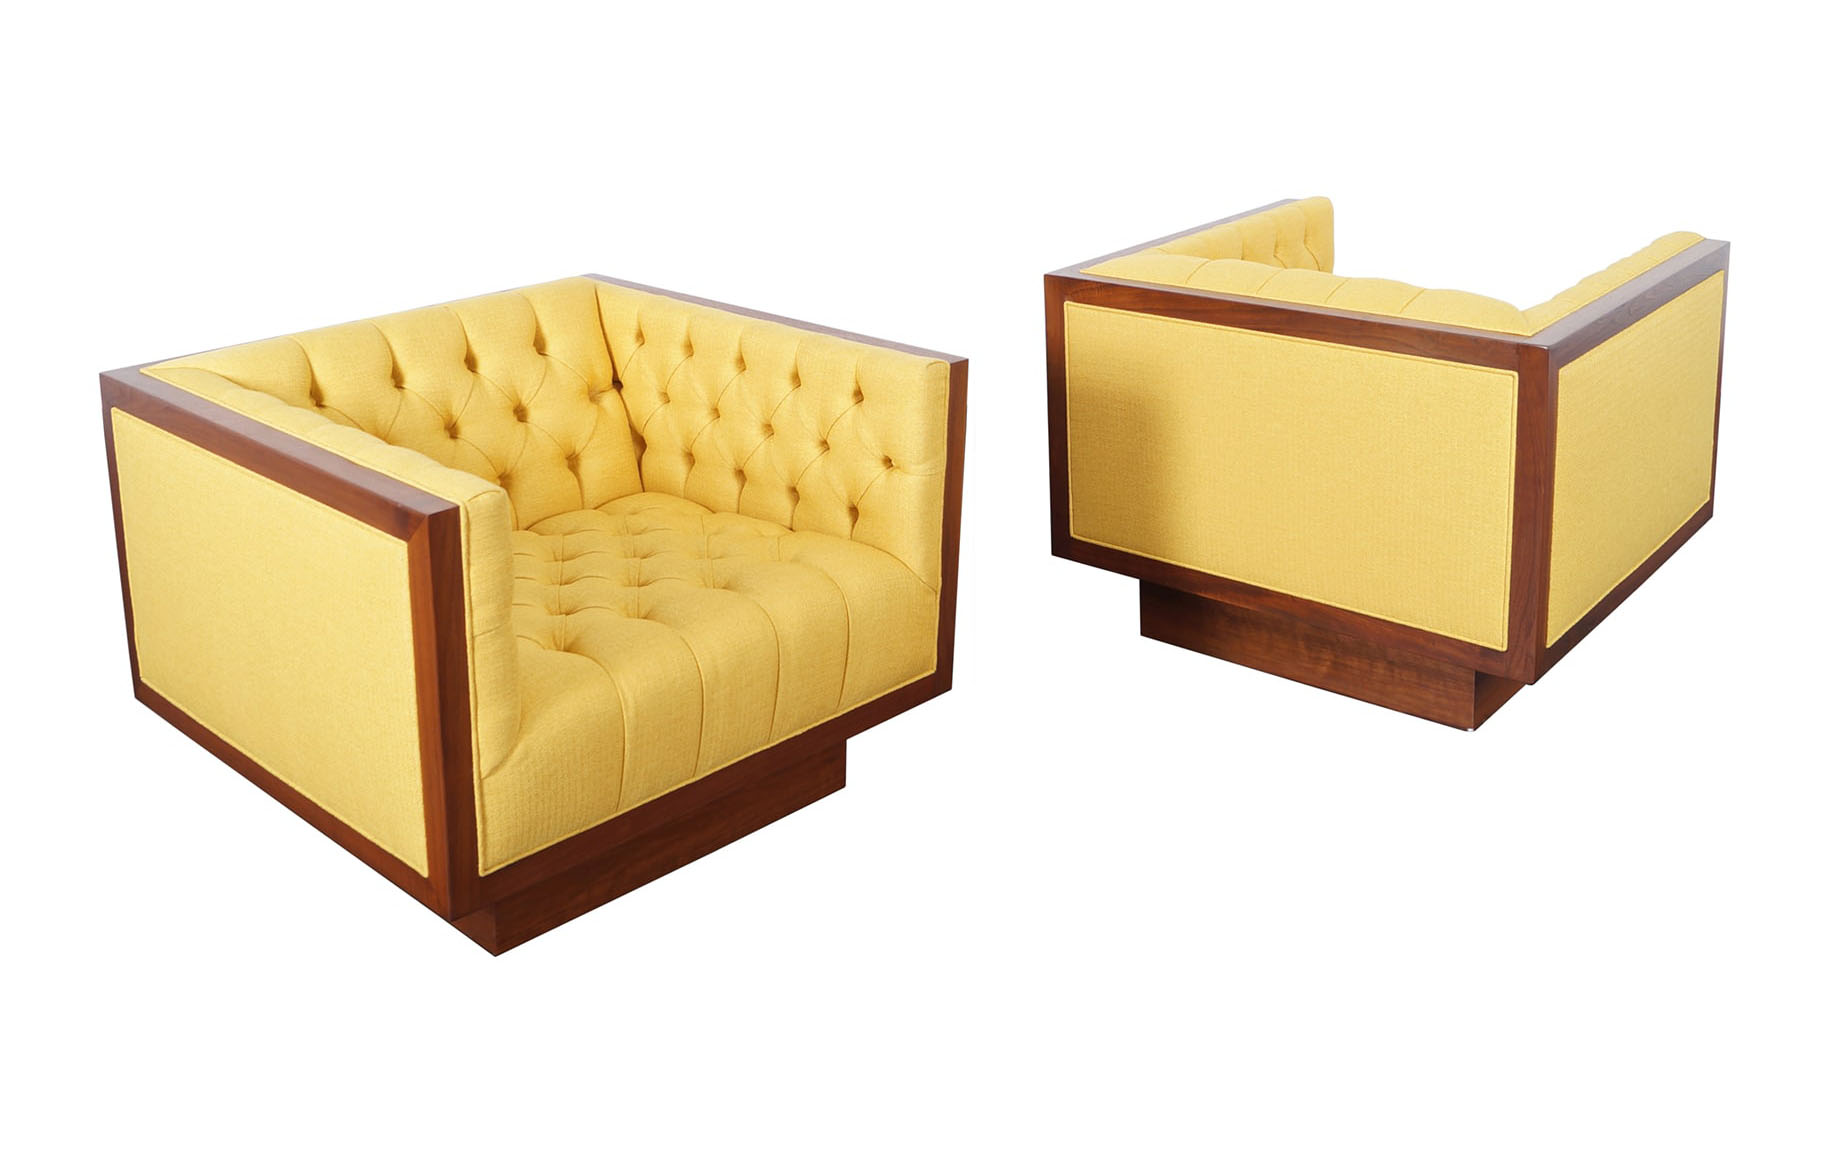 Vintage Tufted Lounge Chairs by Milo Baughman